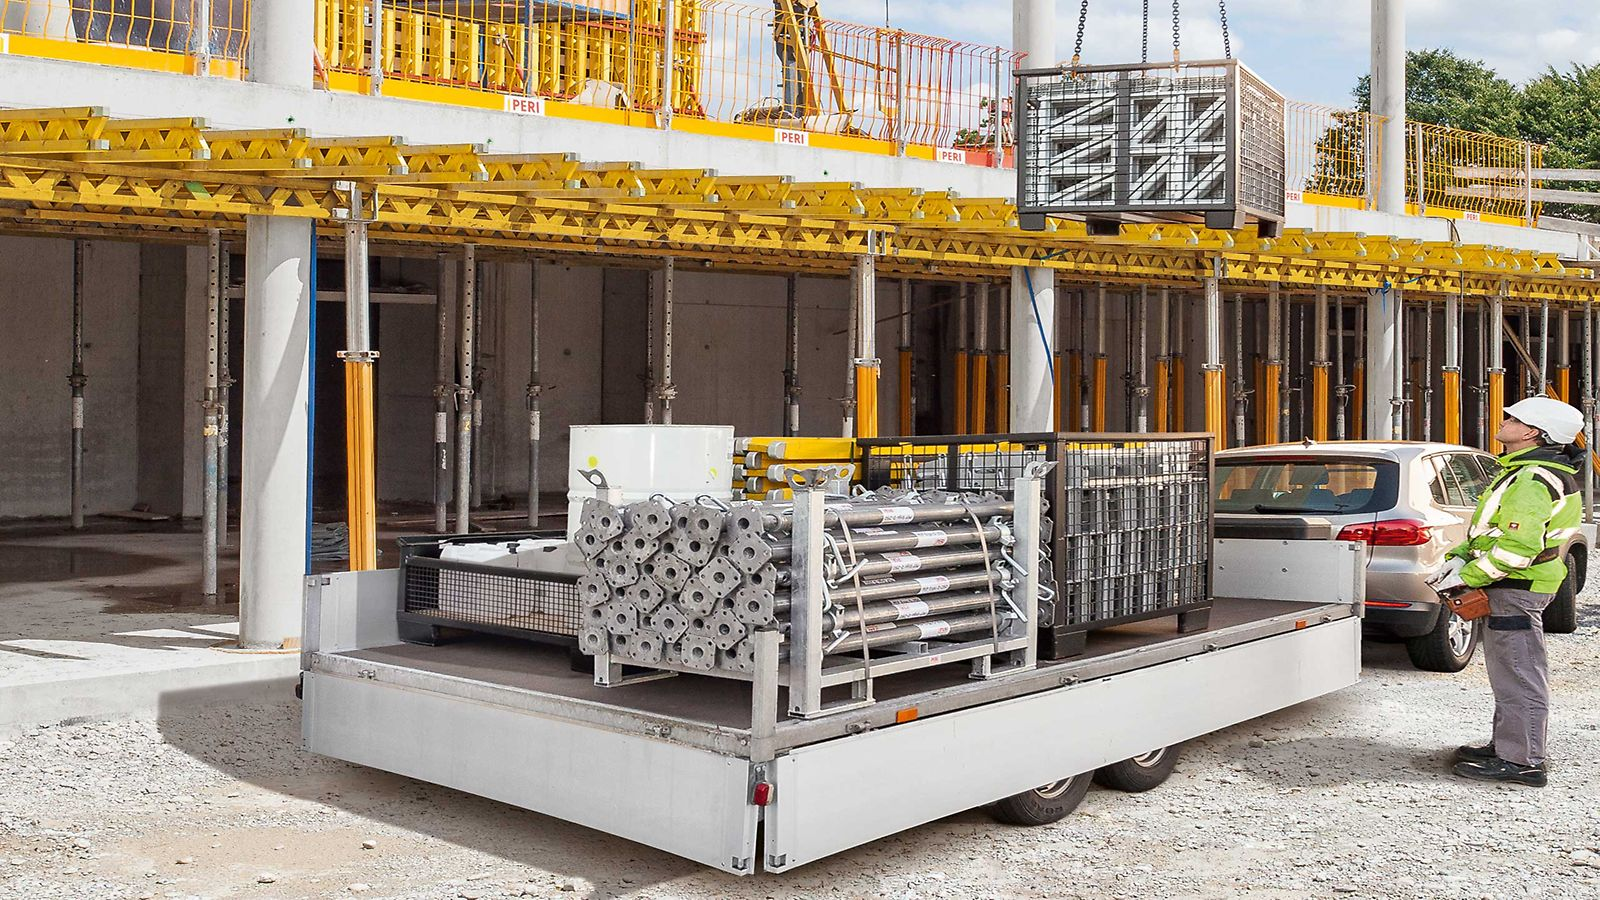 PERI Components are available for immediate delivery to your jobsite